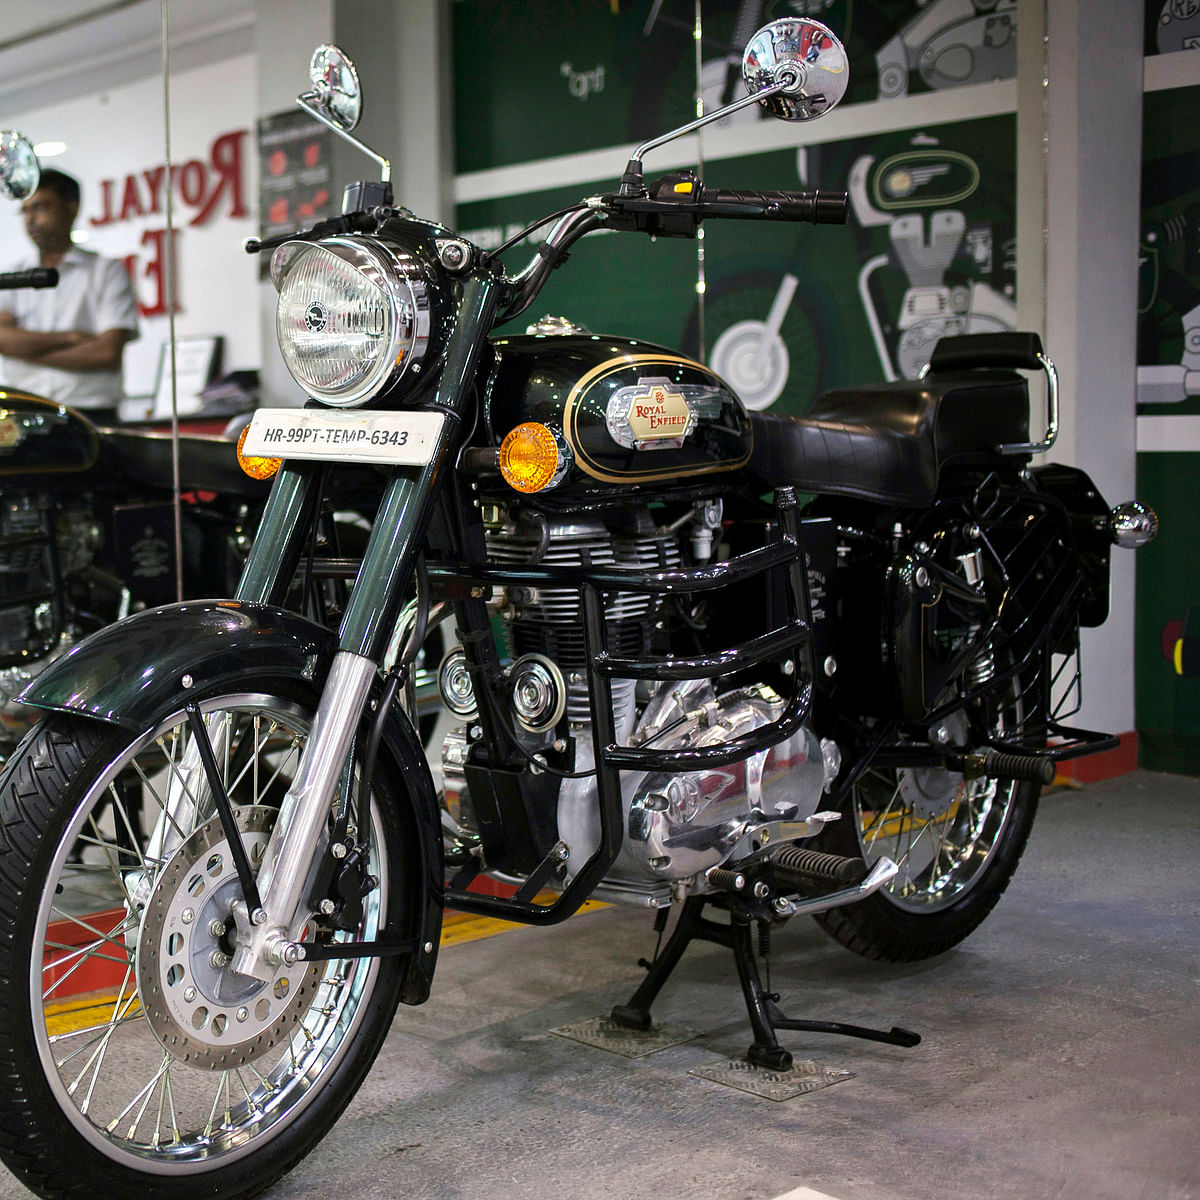 Eicher Motors' Q2 Profit Down 40% As Sales Remain Under Pressure